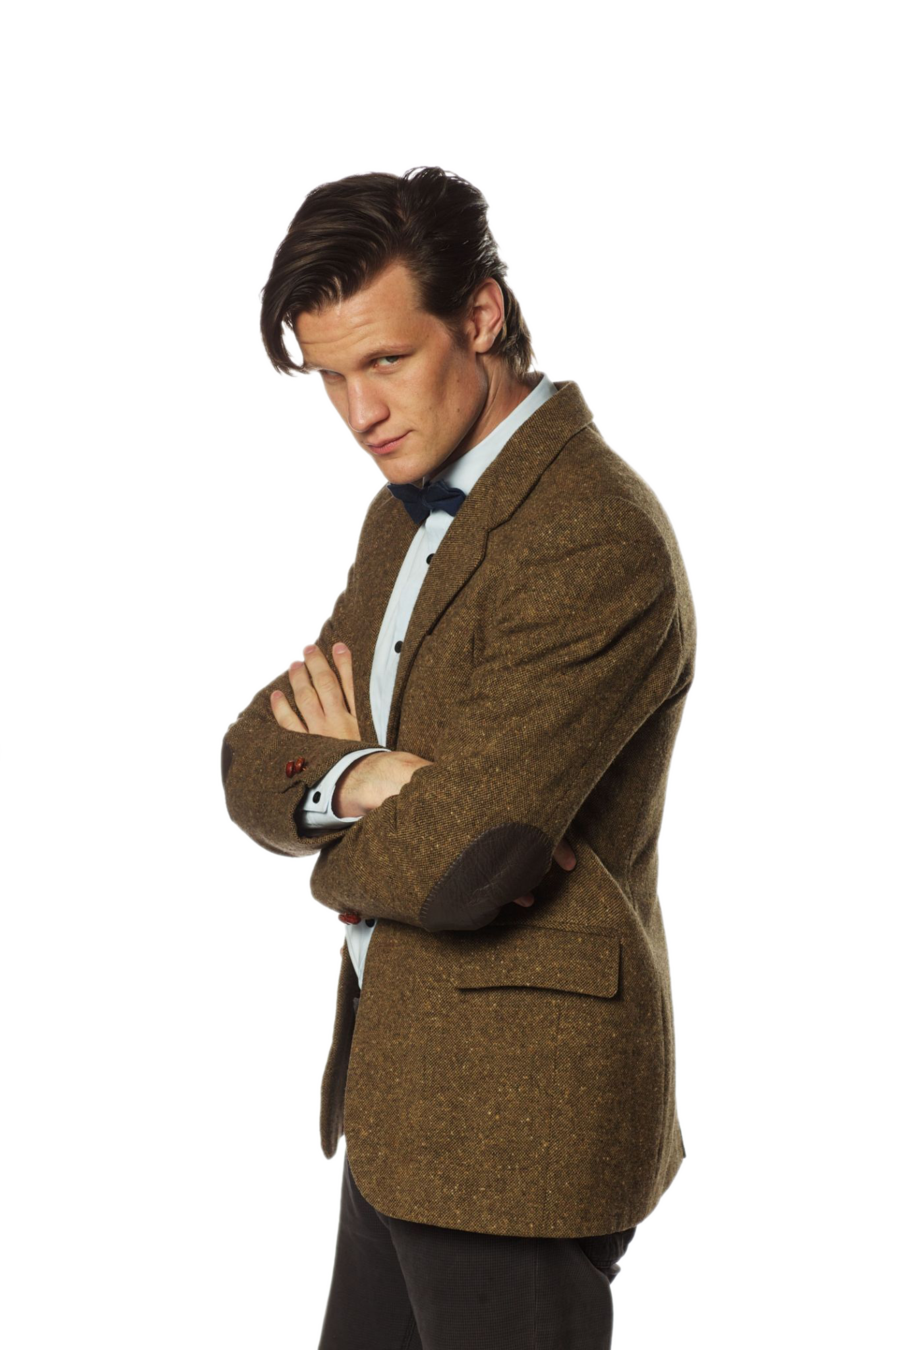 10th doctor png. Th who outfit